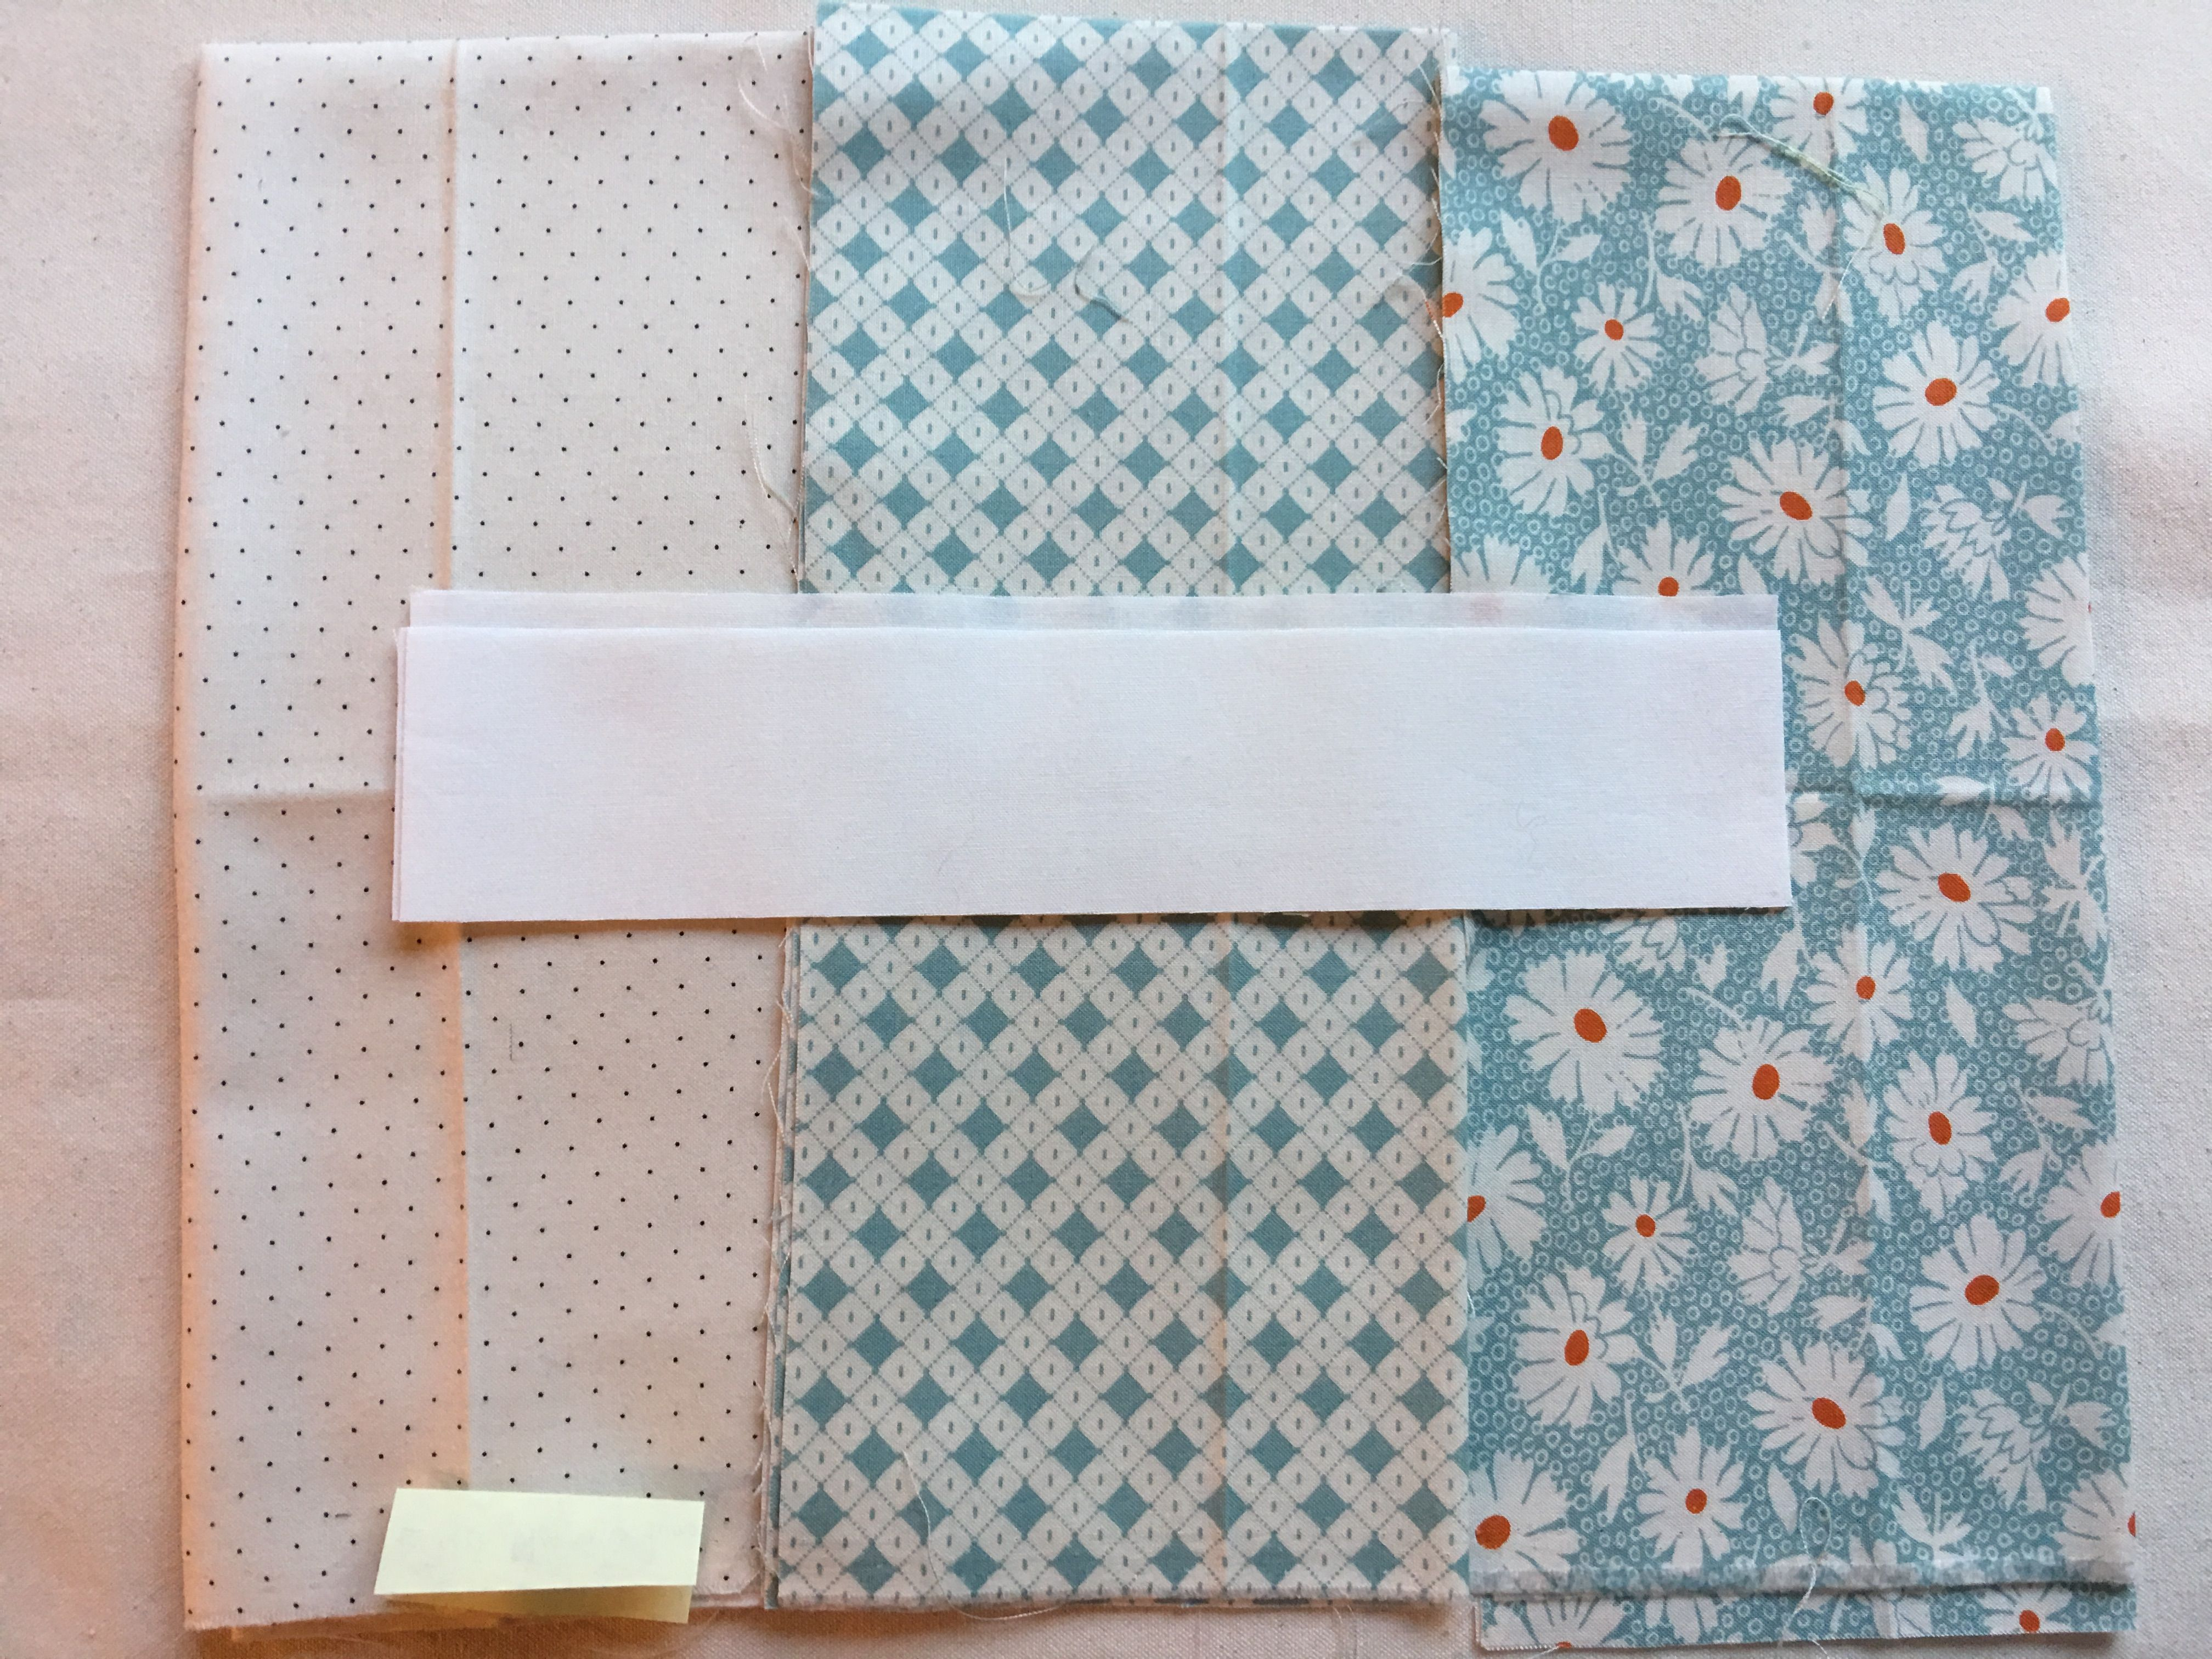 Kona Snow Pin Dot And Hop Skip Jump Pale Blue House Quilts